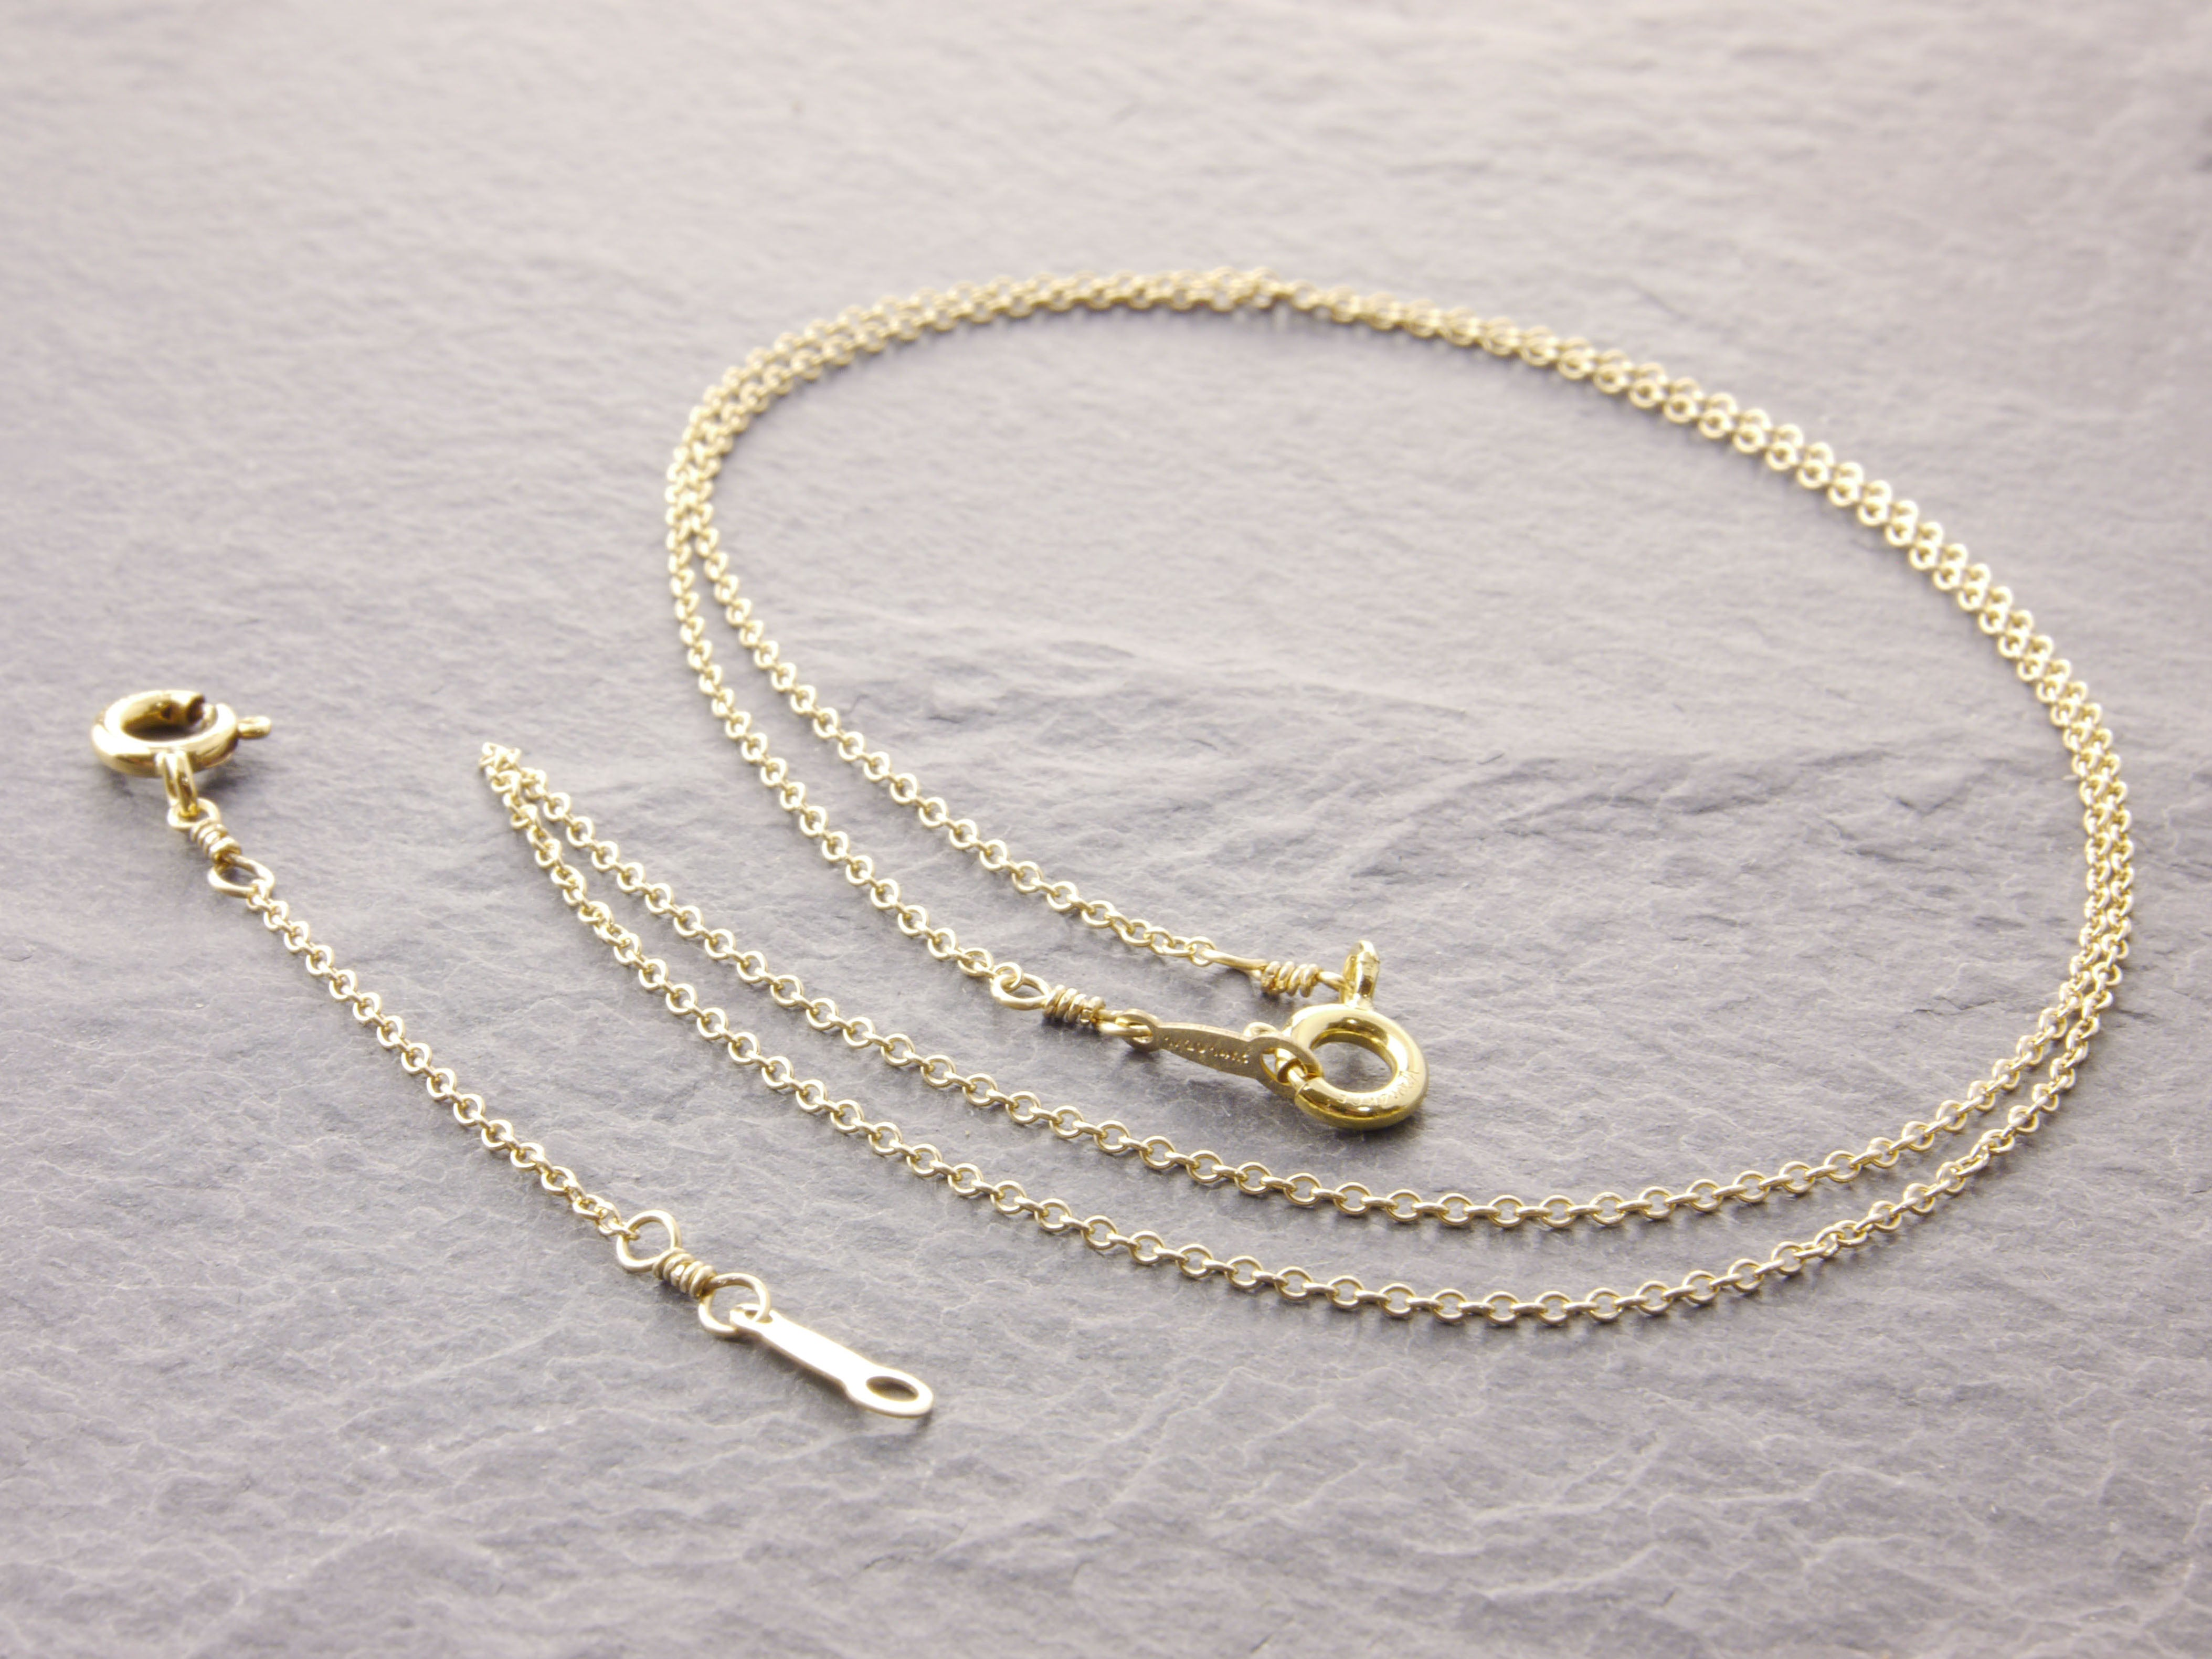 gold delicate chain with adjuster